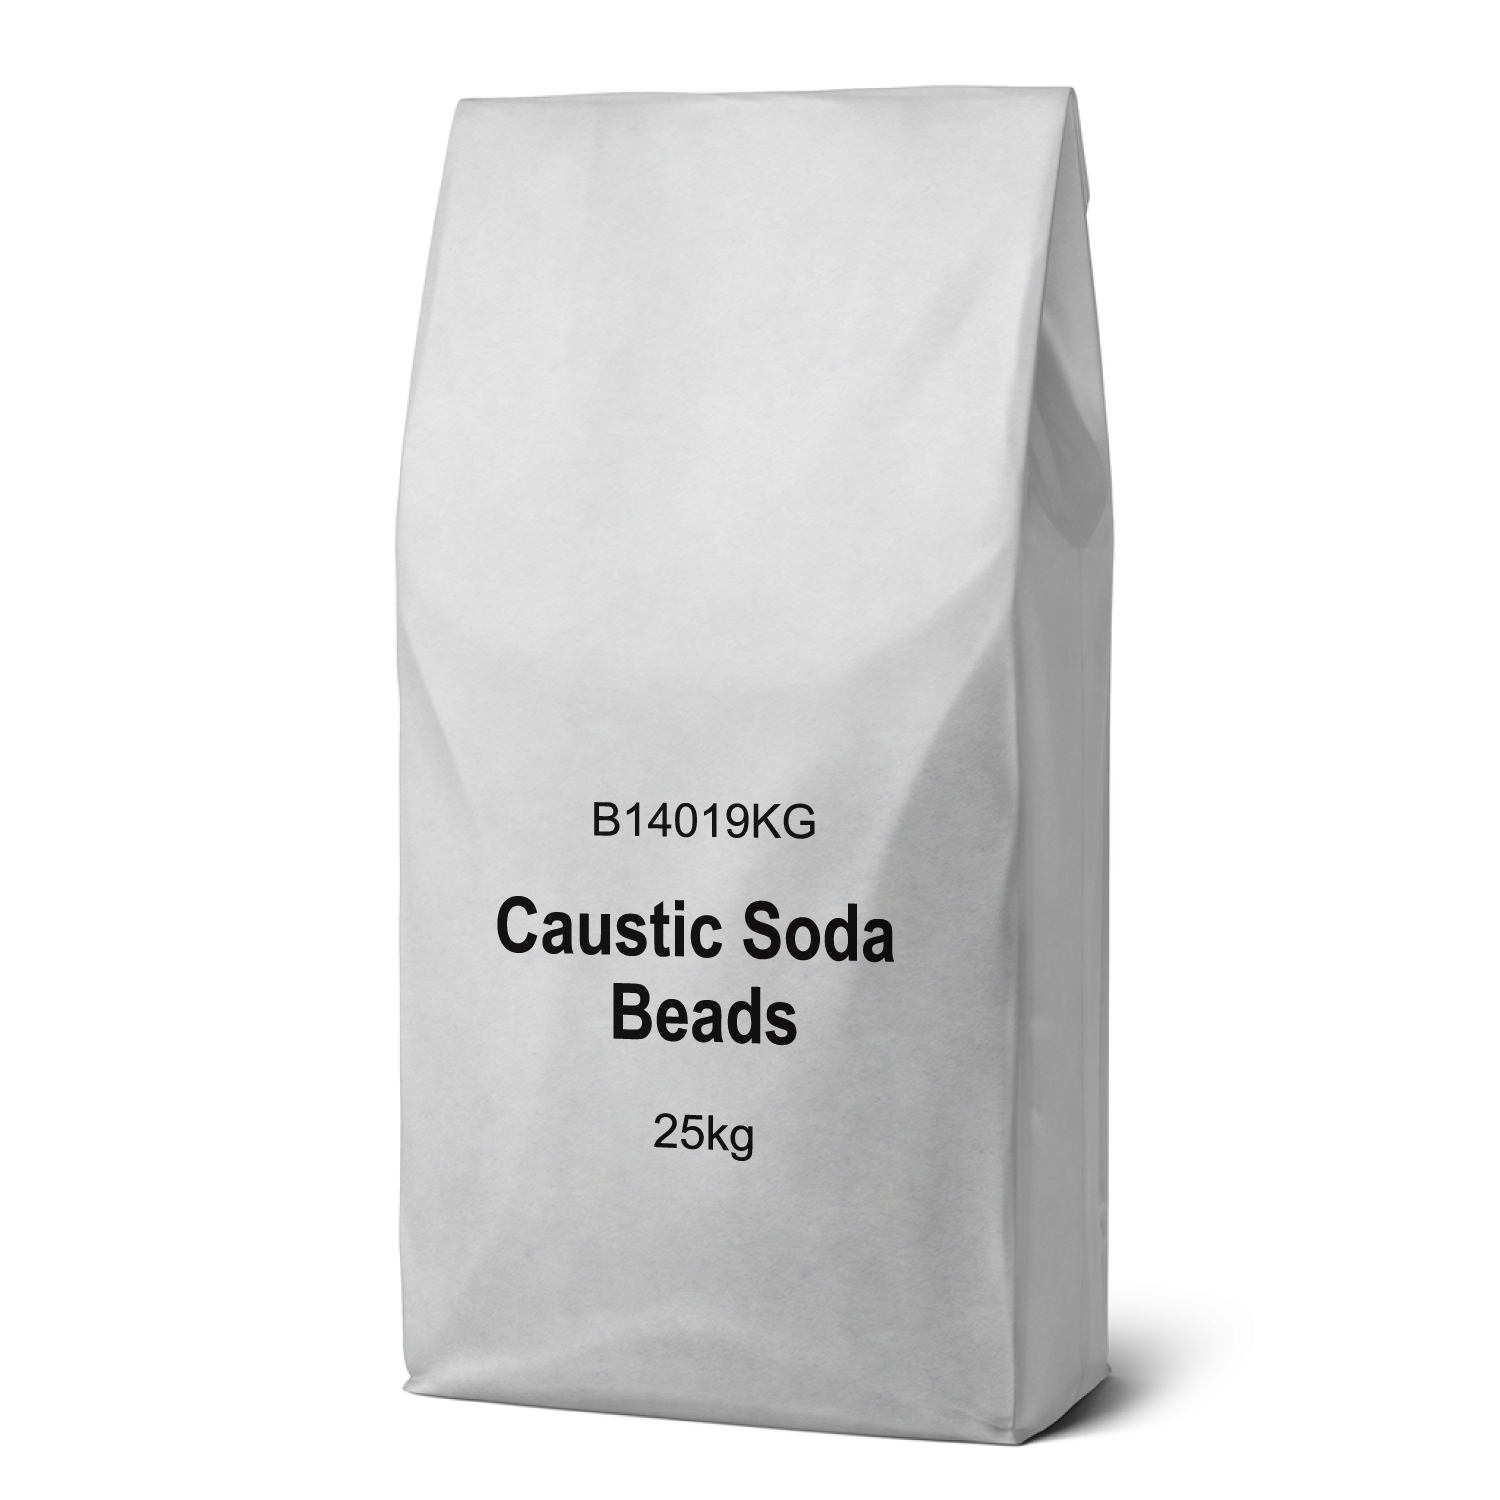 Product image for Caustic Soda Beads